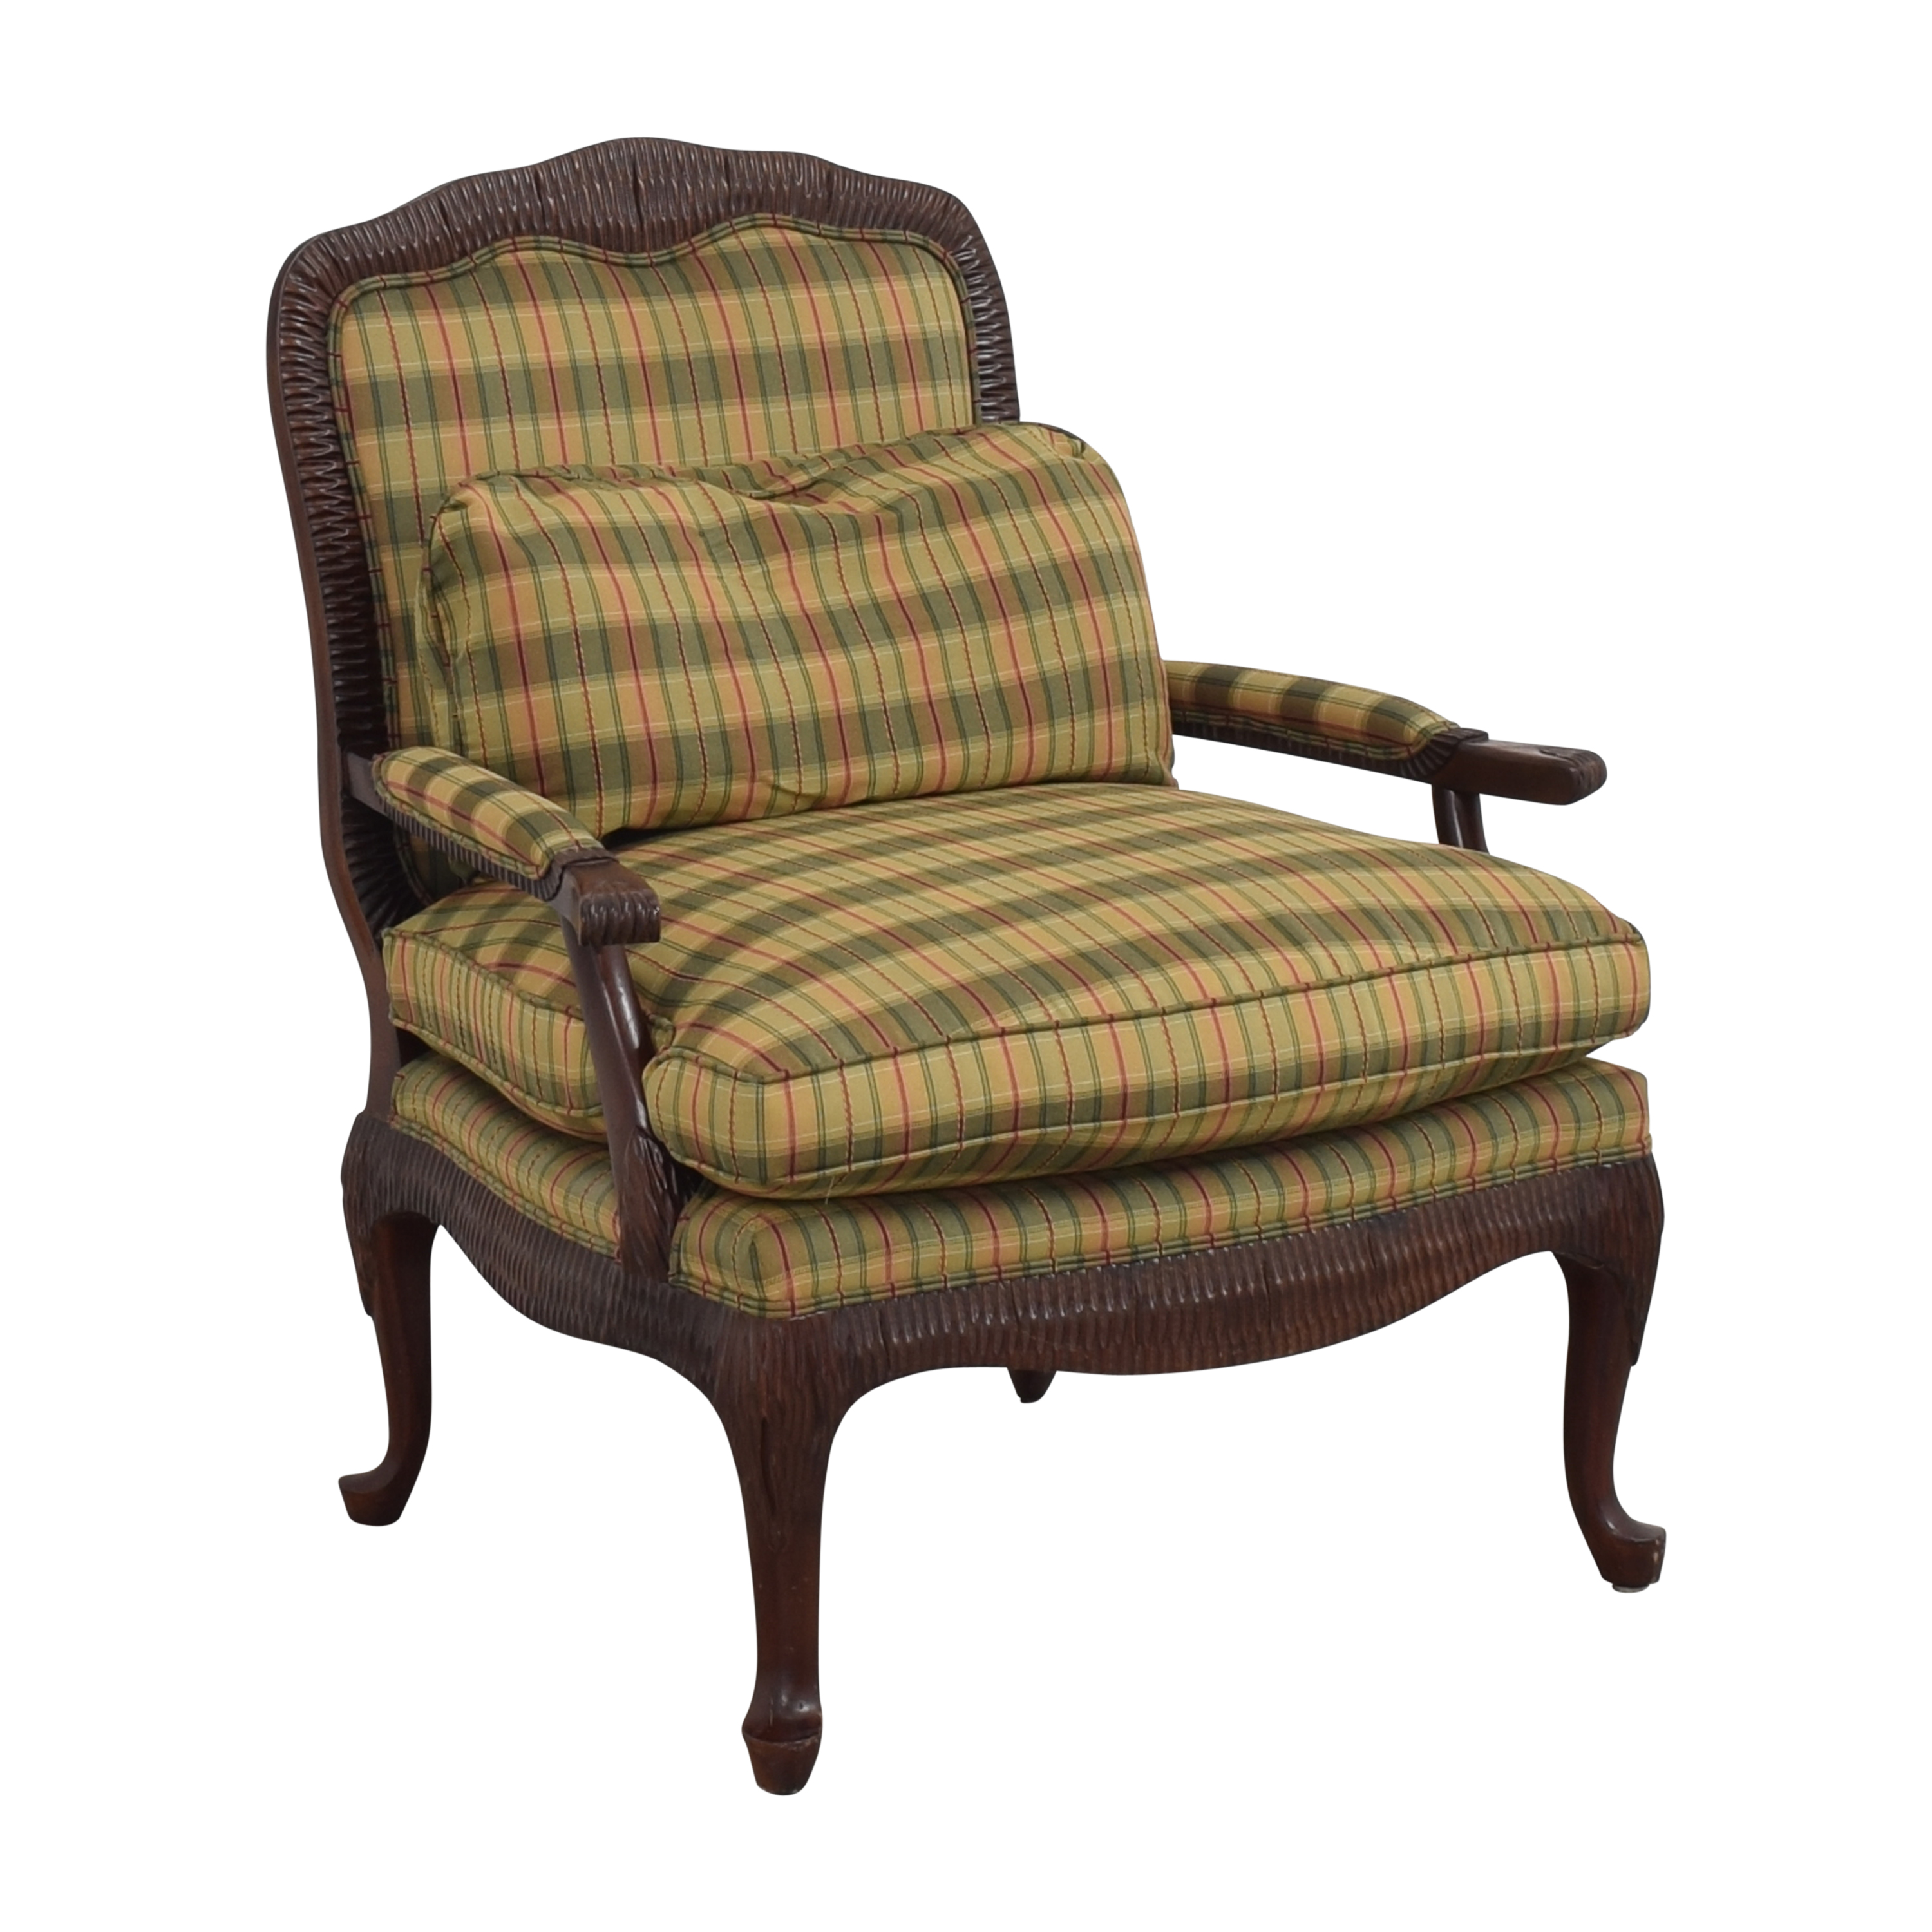 Lexington Furniture Upholstered Accent Chair / Chairs